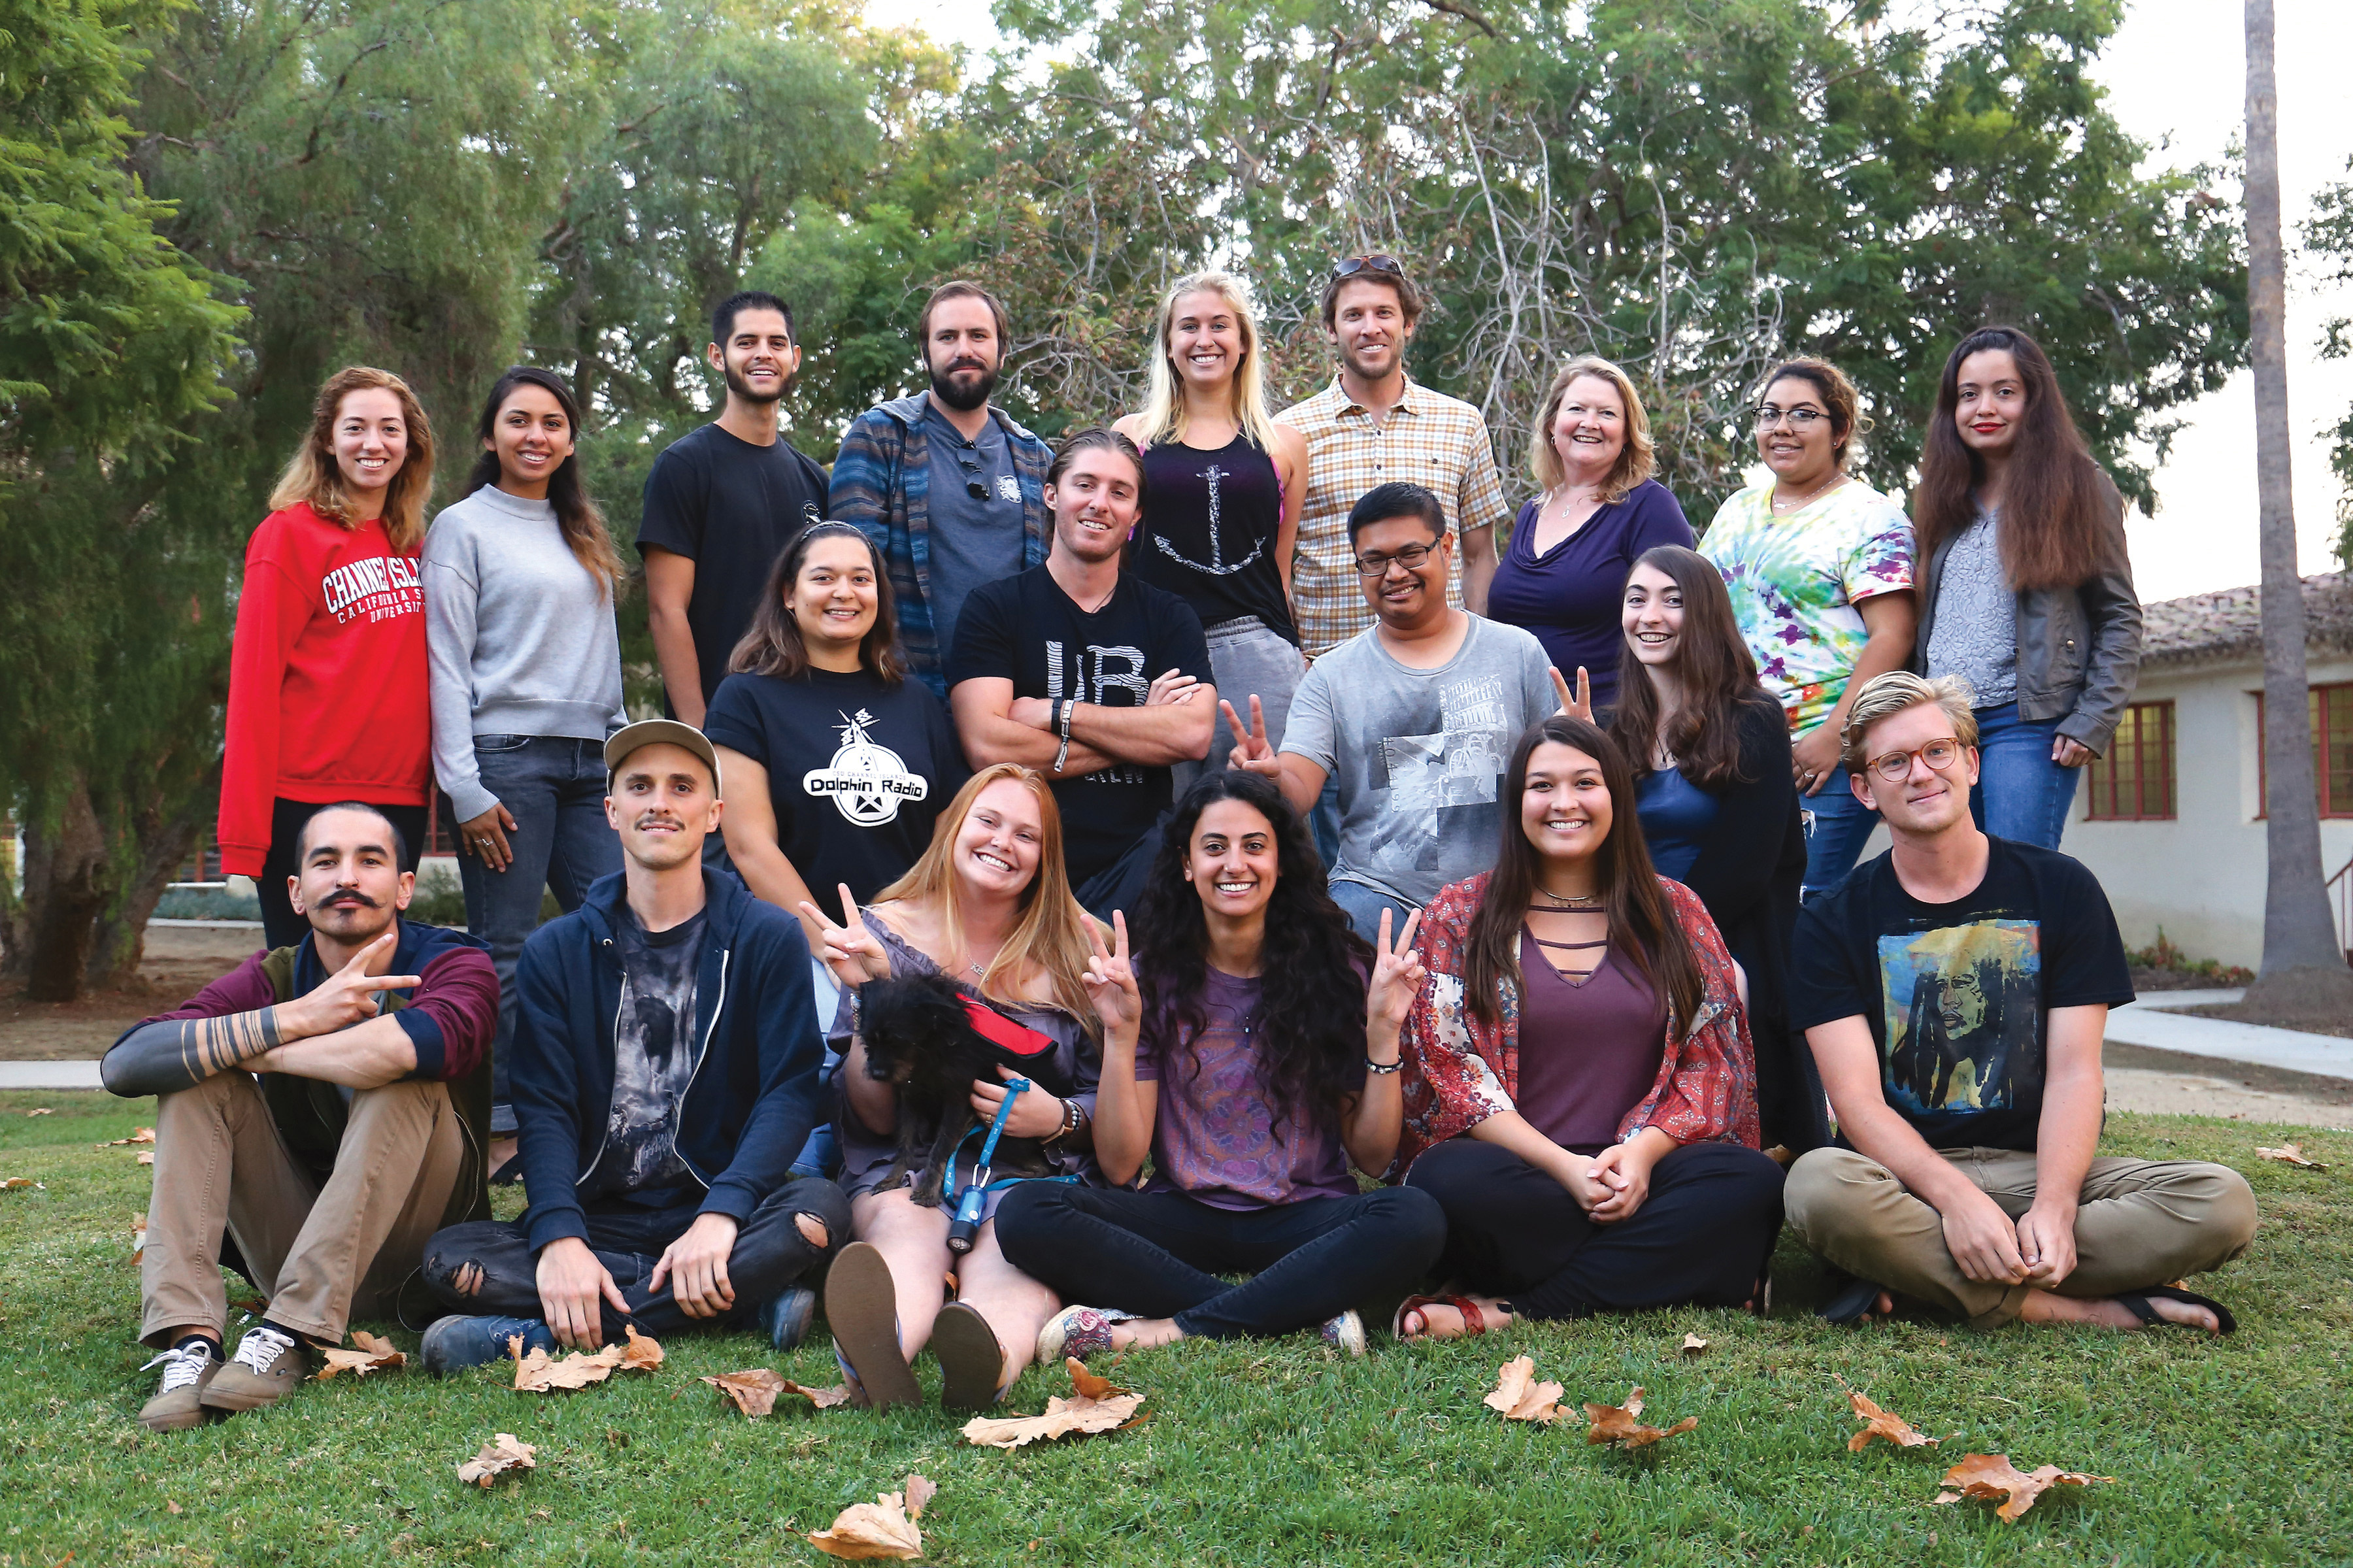 Members of CI's Green Generation club pose for a group photo. Green Generation is dedicated to bringing sustainability and environmental awareness to campus. Photo credit to Carisa Arellano.